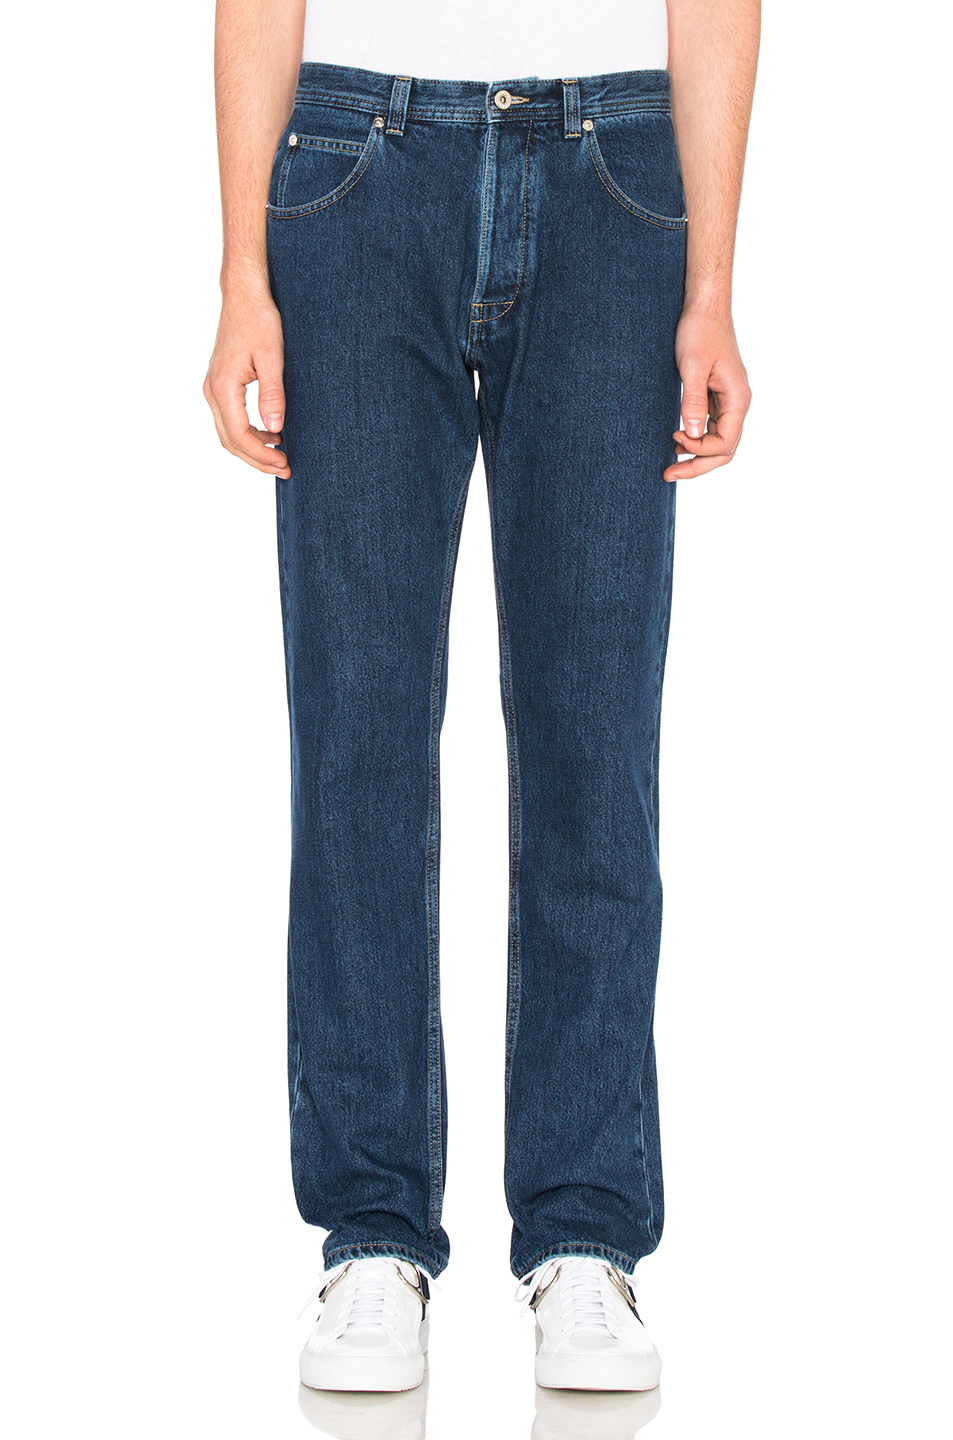 Loewe Stonewashed Jeans in Blue